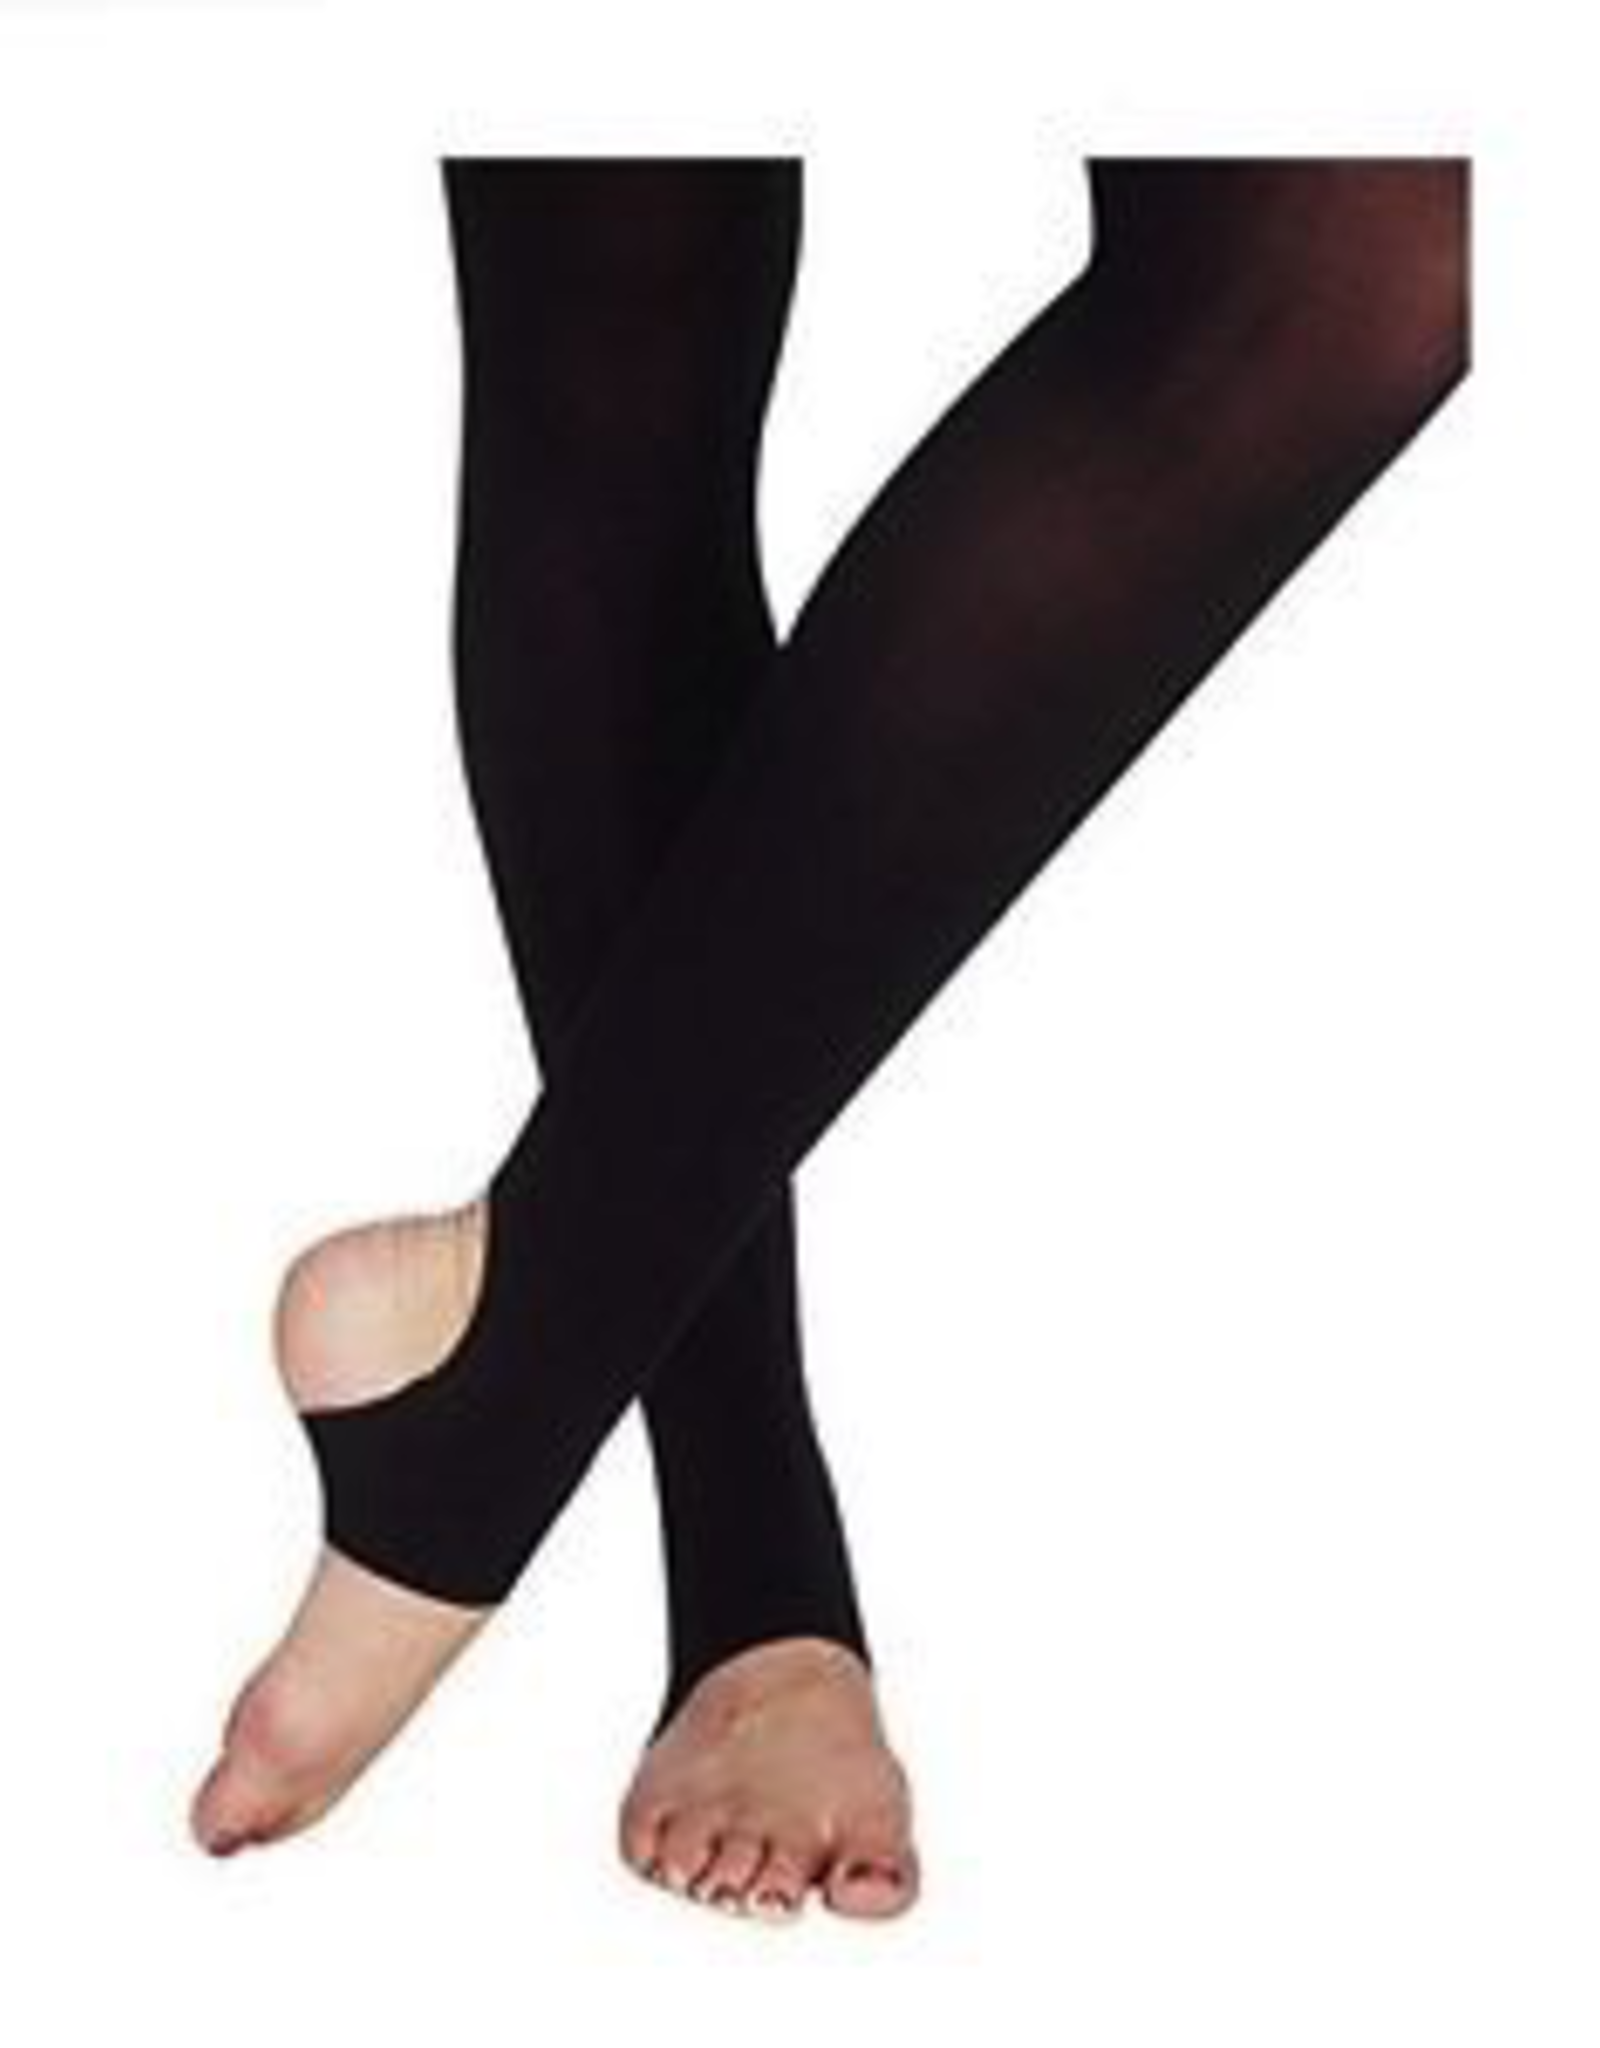 Bodywrappers A82 Stirrup Tights Adult